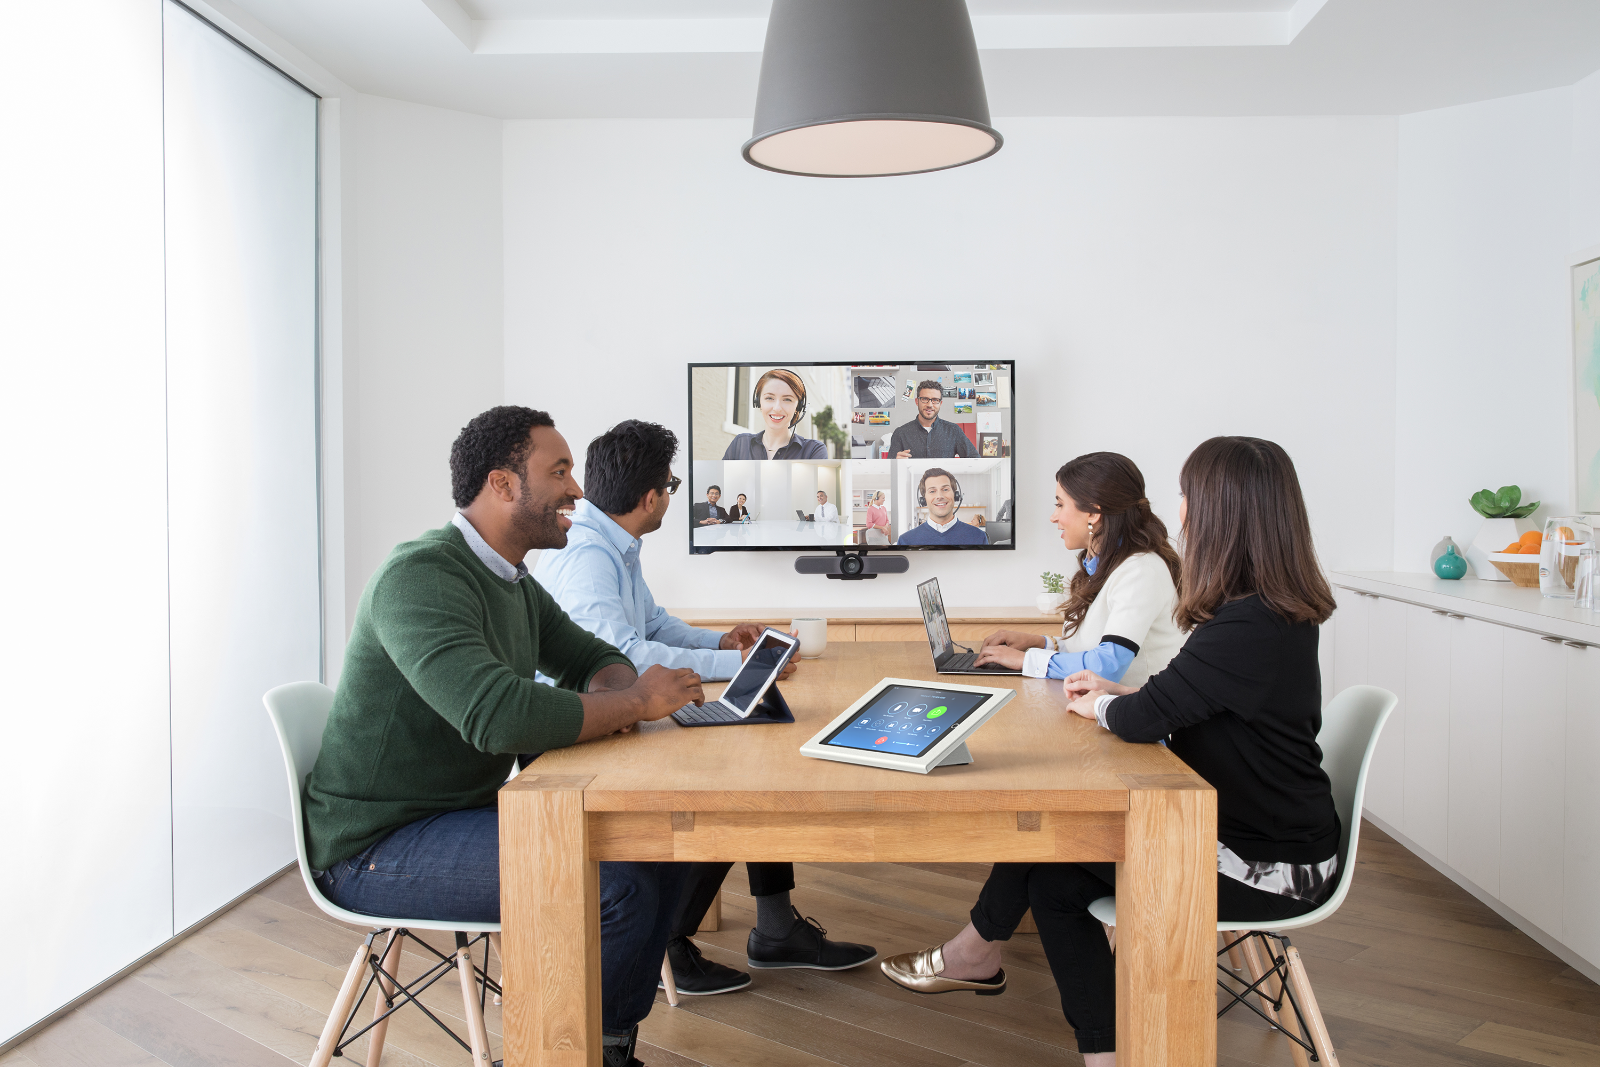 Top 3 Video Collaboration Solutions To Consider For Improved Meetings.